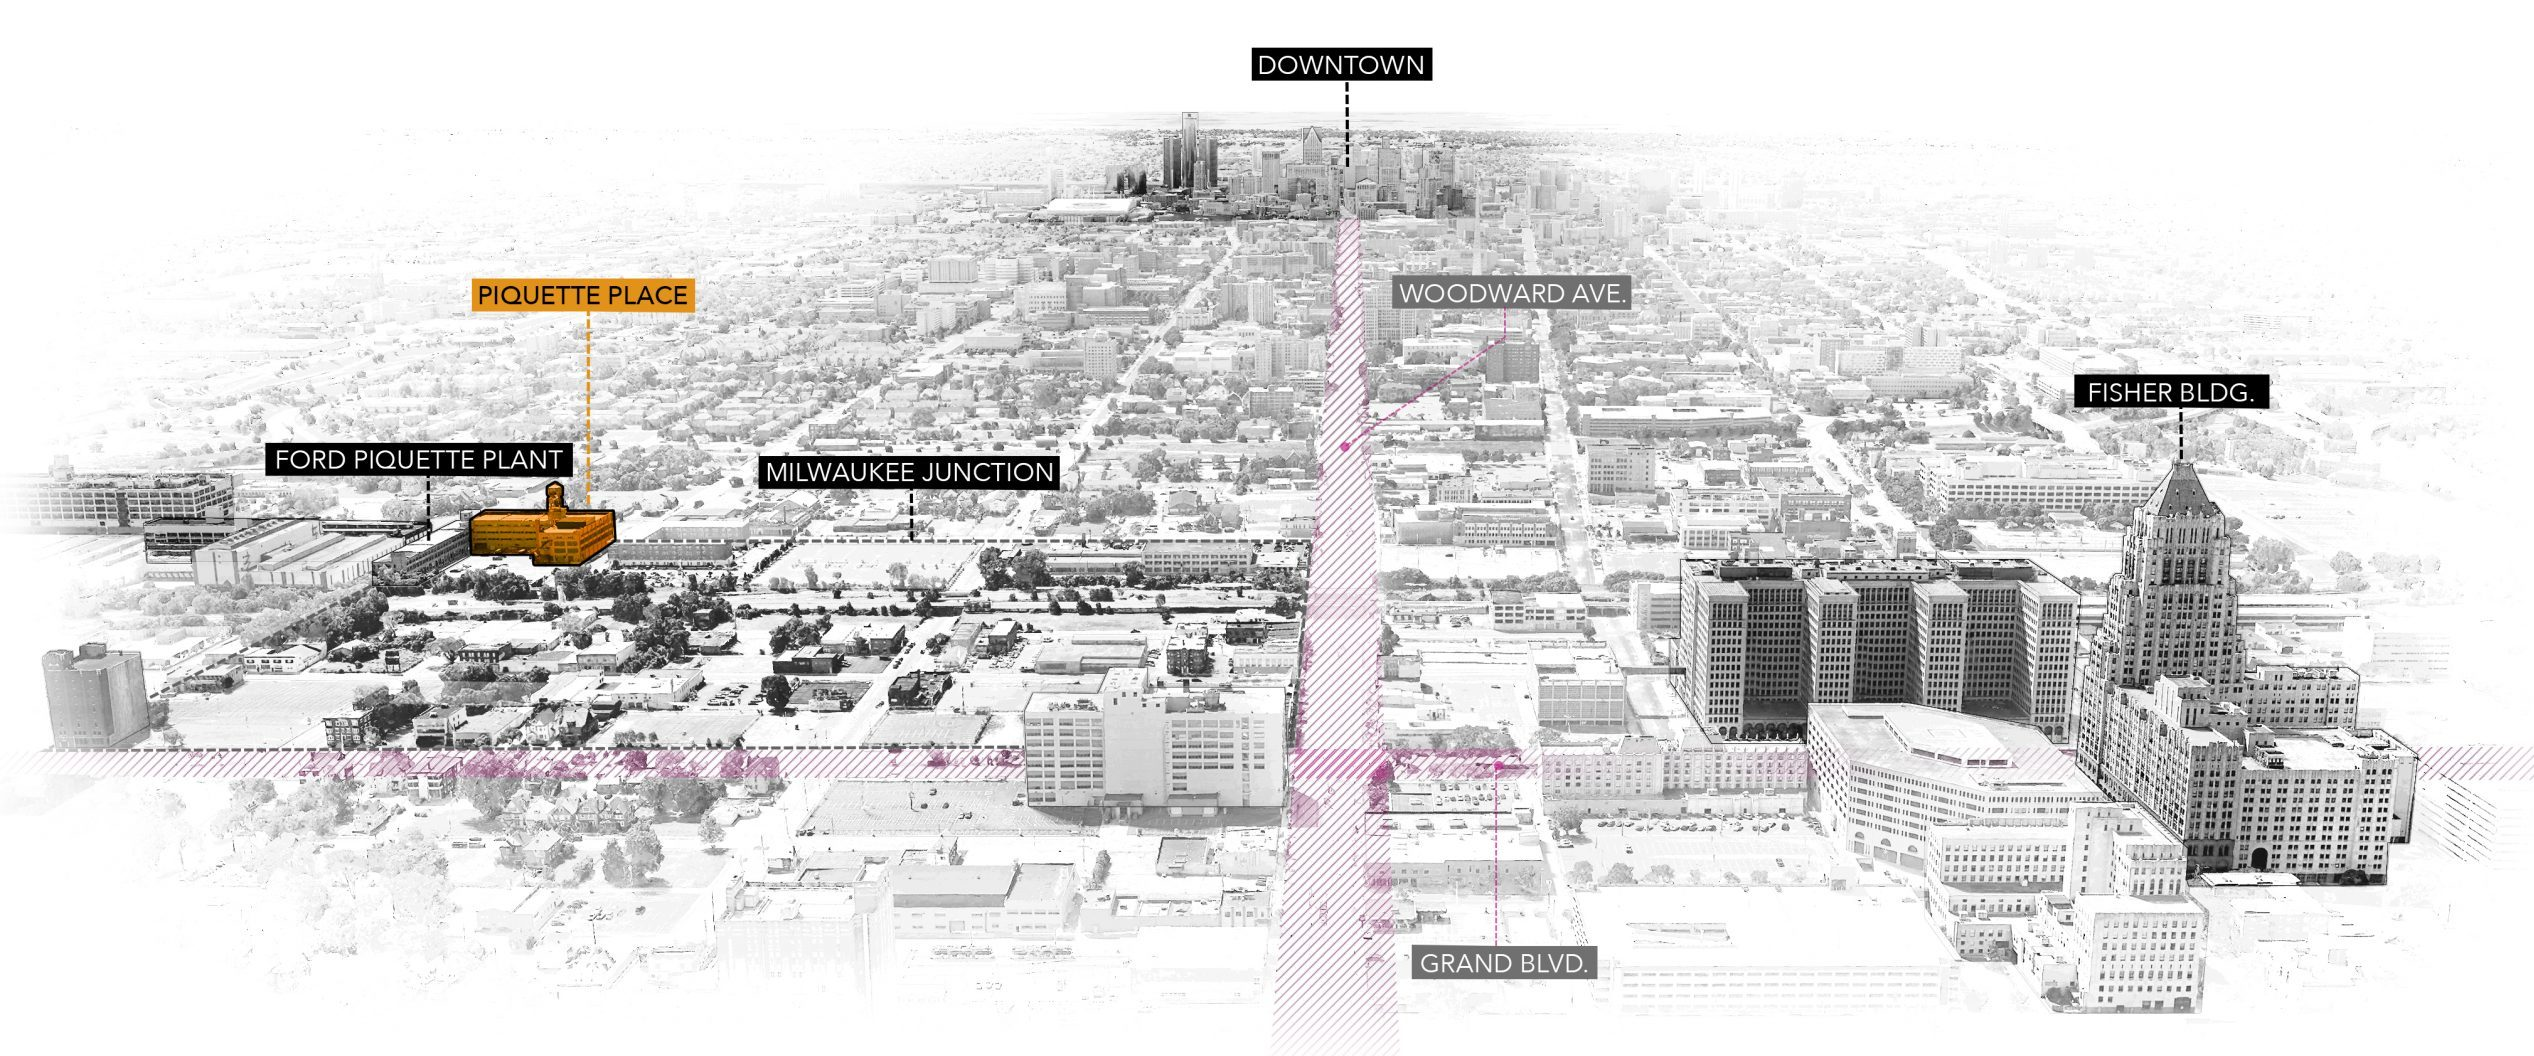 Context District Analysis Diagram of Piquette Place Commercial Office Project distance to downtown Detroit Michigan Architecture Adaptive Reuse